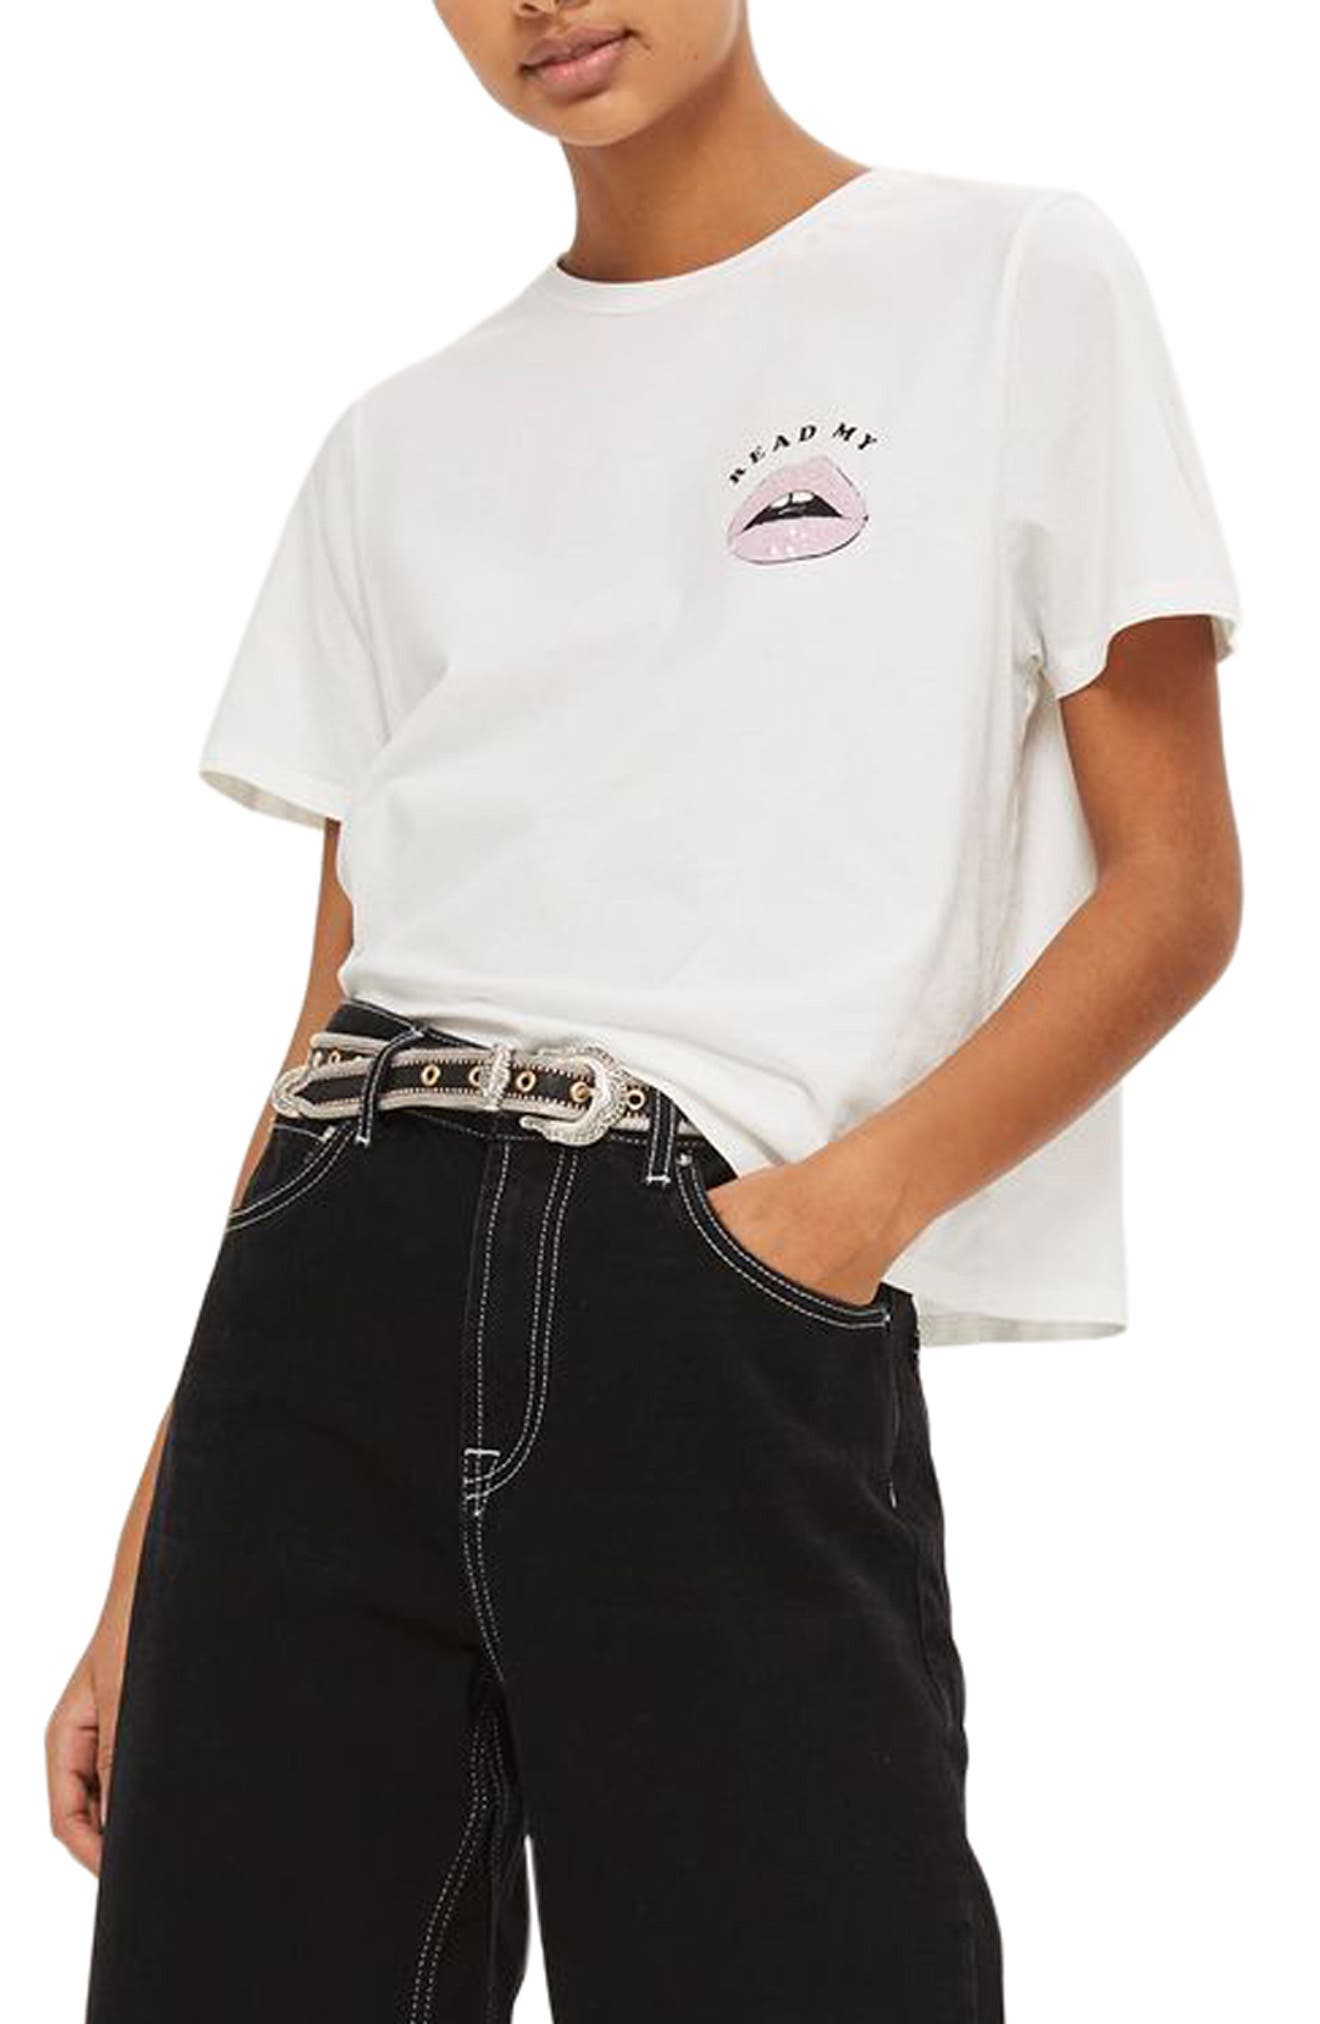 Read My Lips Graphic Tee,                         Main,                         color, 100